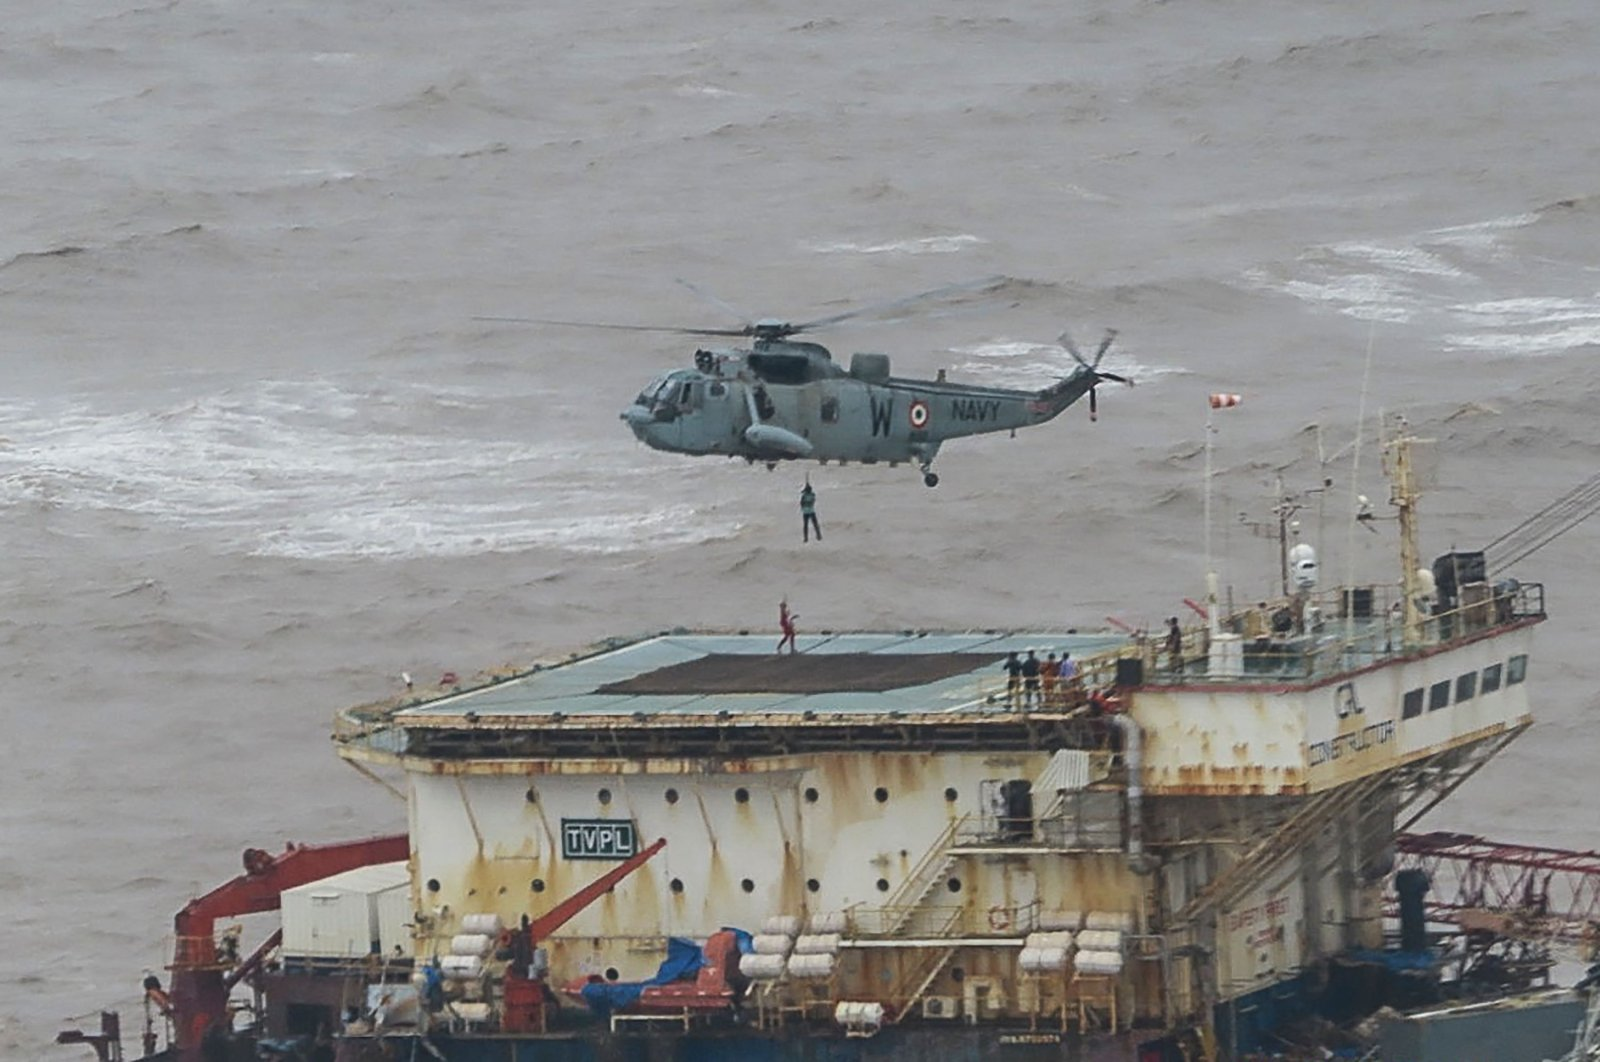 Stranded workers are airlifted by naval personnel on an Indian Navy Seaking helicopter from a barge that had gone adrift amidst heavy rain and strong winds due to Cyclone Tauktae, the Arabian Sea, May 18, 2021. (Indian Navy handout photo via AFP)